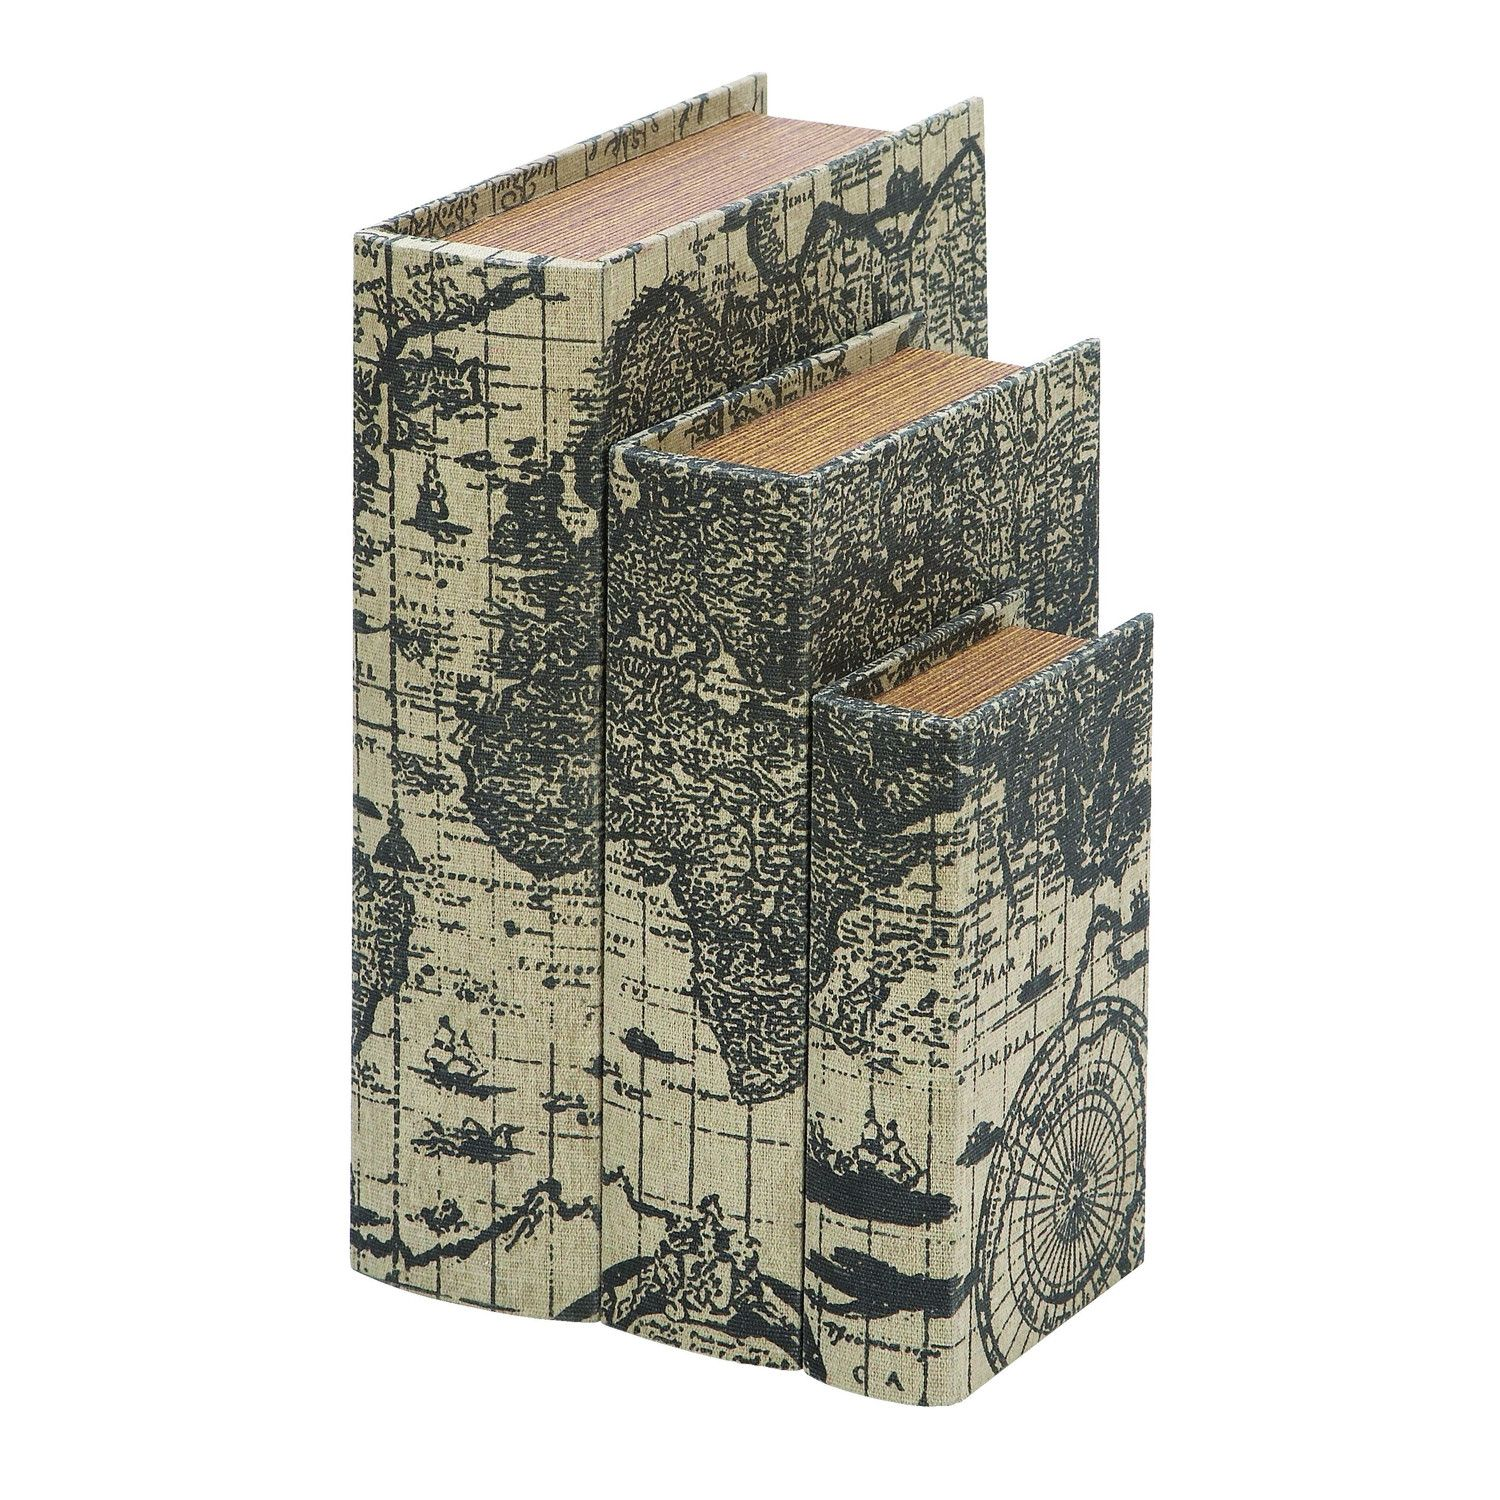 Woodland imports ancient world map book box decor pinterest woodland imports ancient world map book box gumiabroncs Image collections